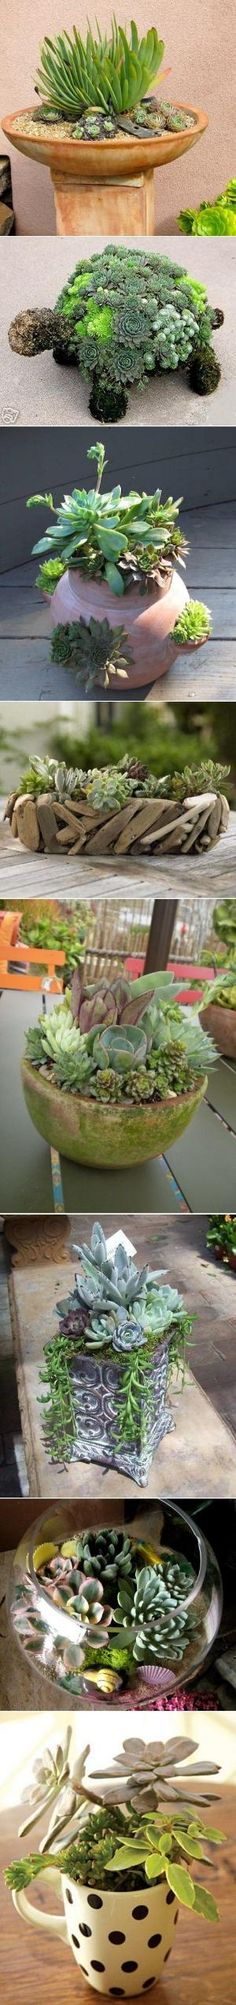 DIY Succulent Garden Ideas by Hercio Dias